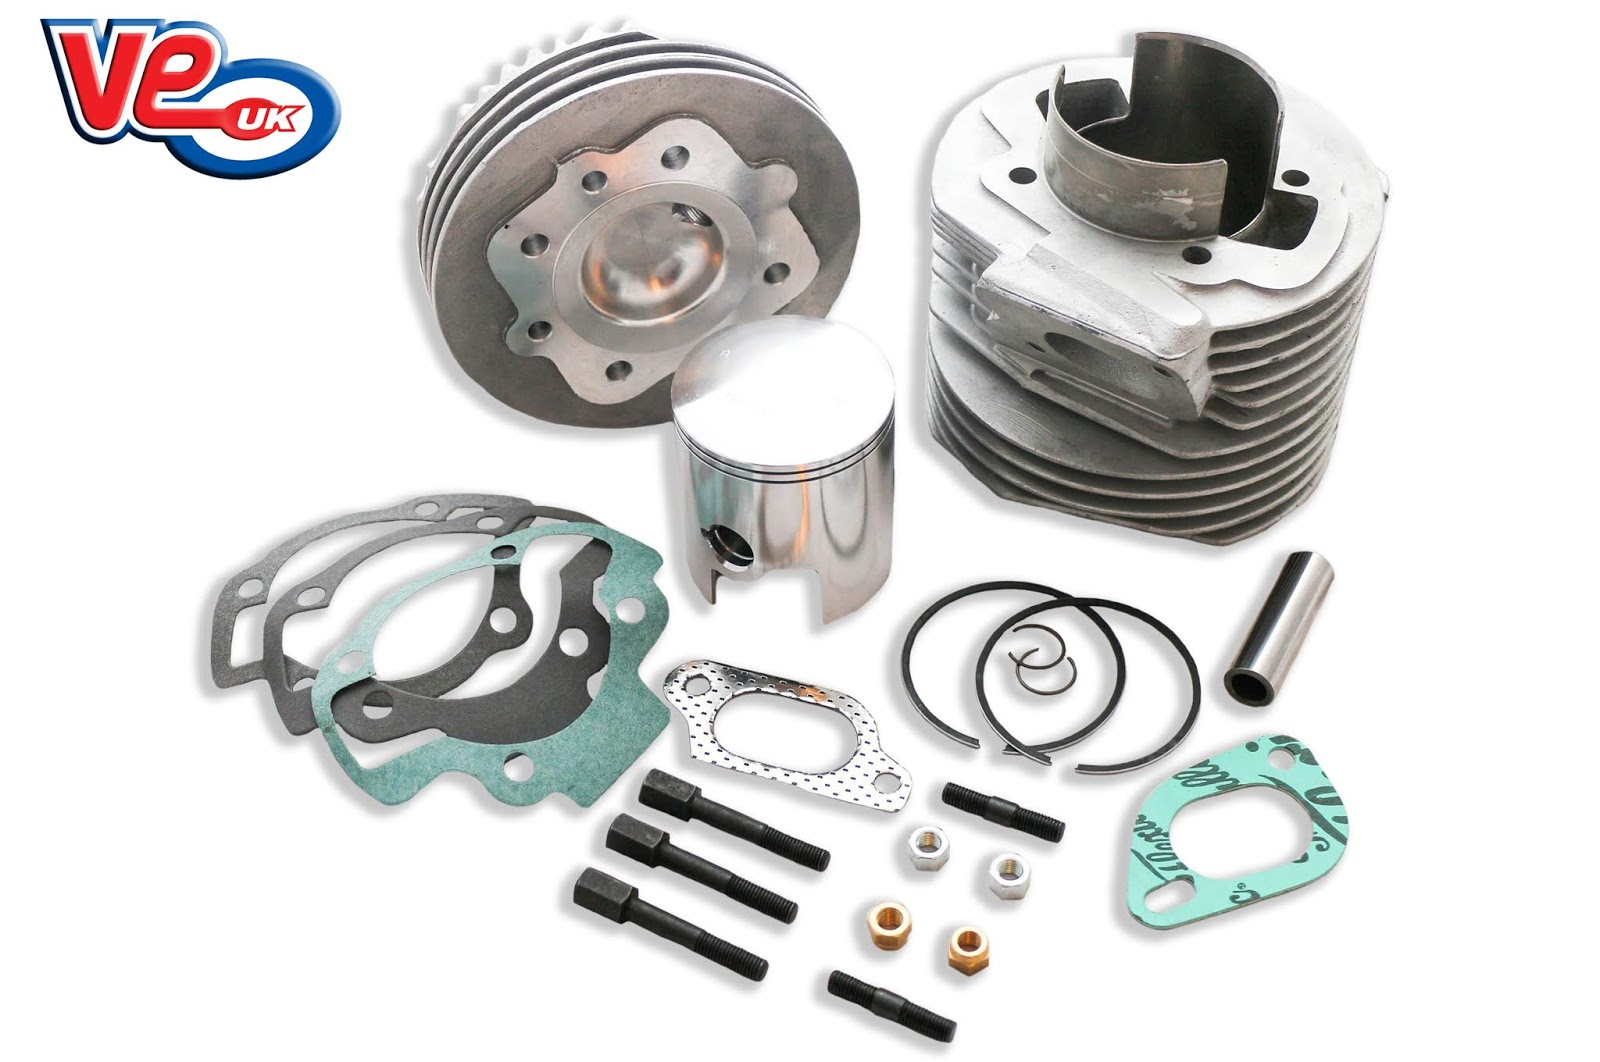 Lambretta GP/SX/TV 200 Mugello 200cc Cylinder Kit